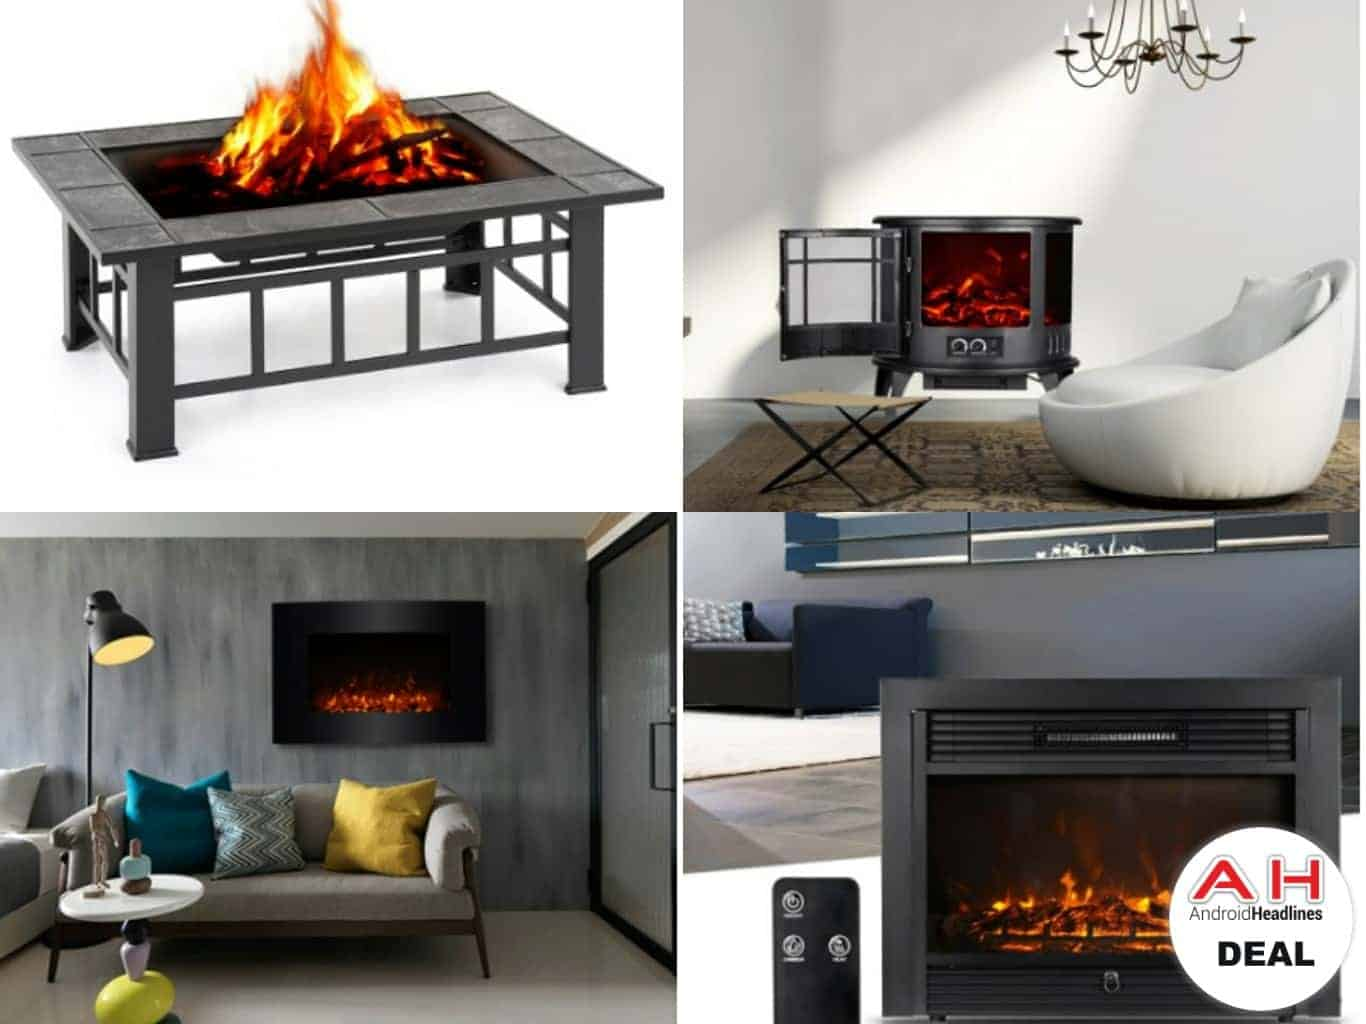 corner tv stand fireplaces electric target black friday stands fireplace sale on